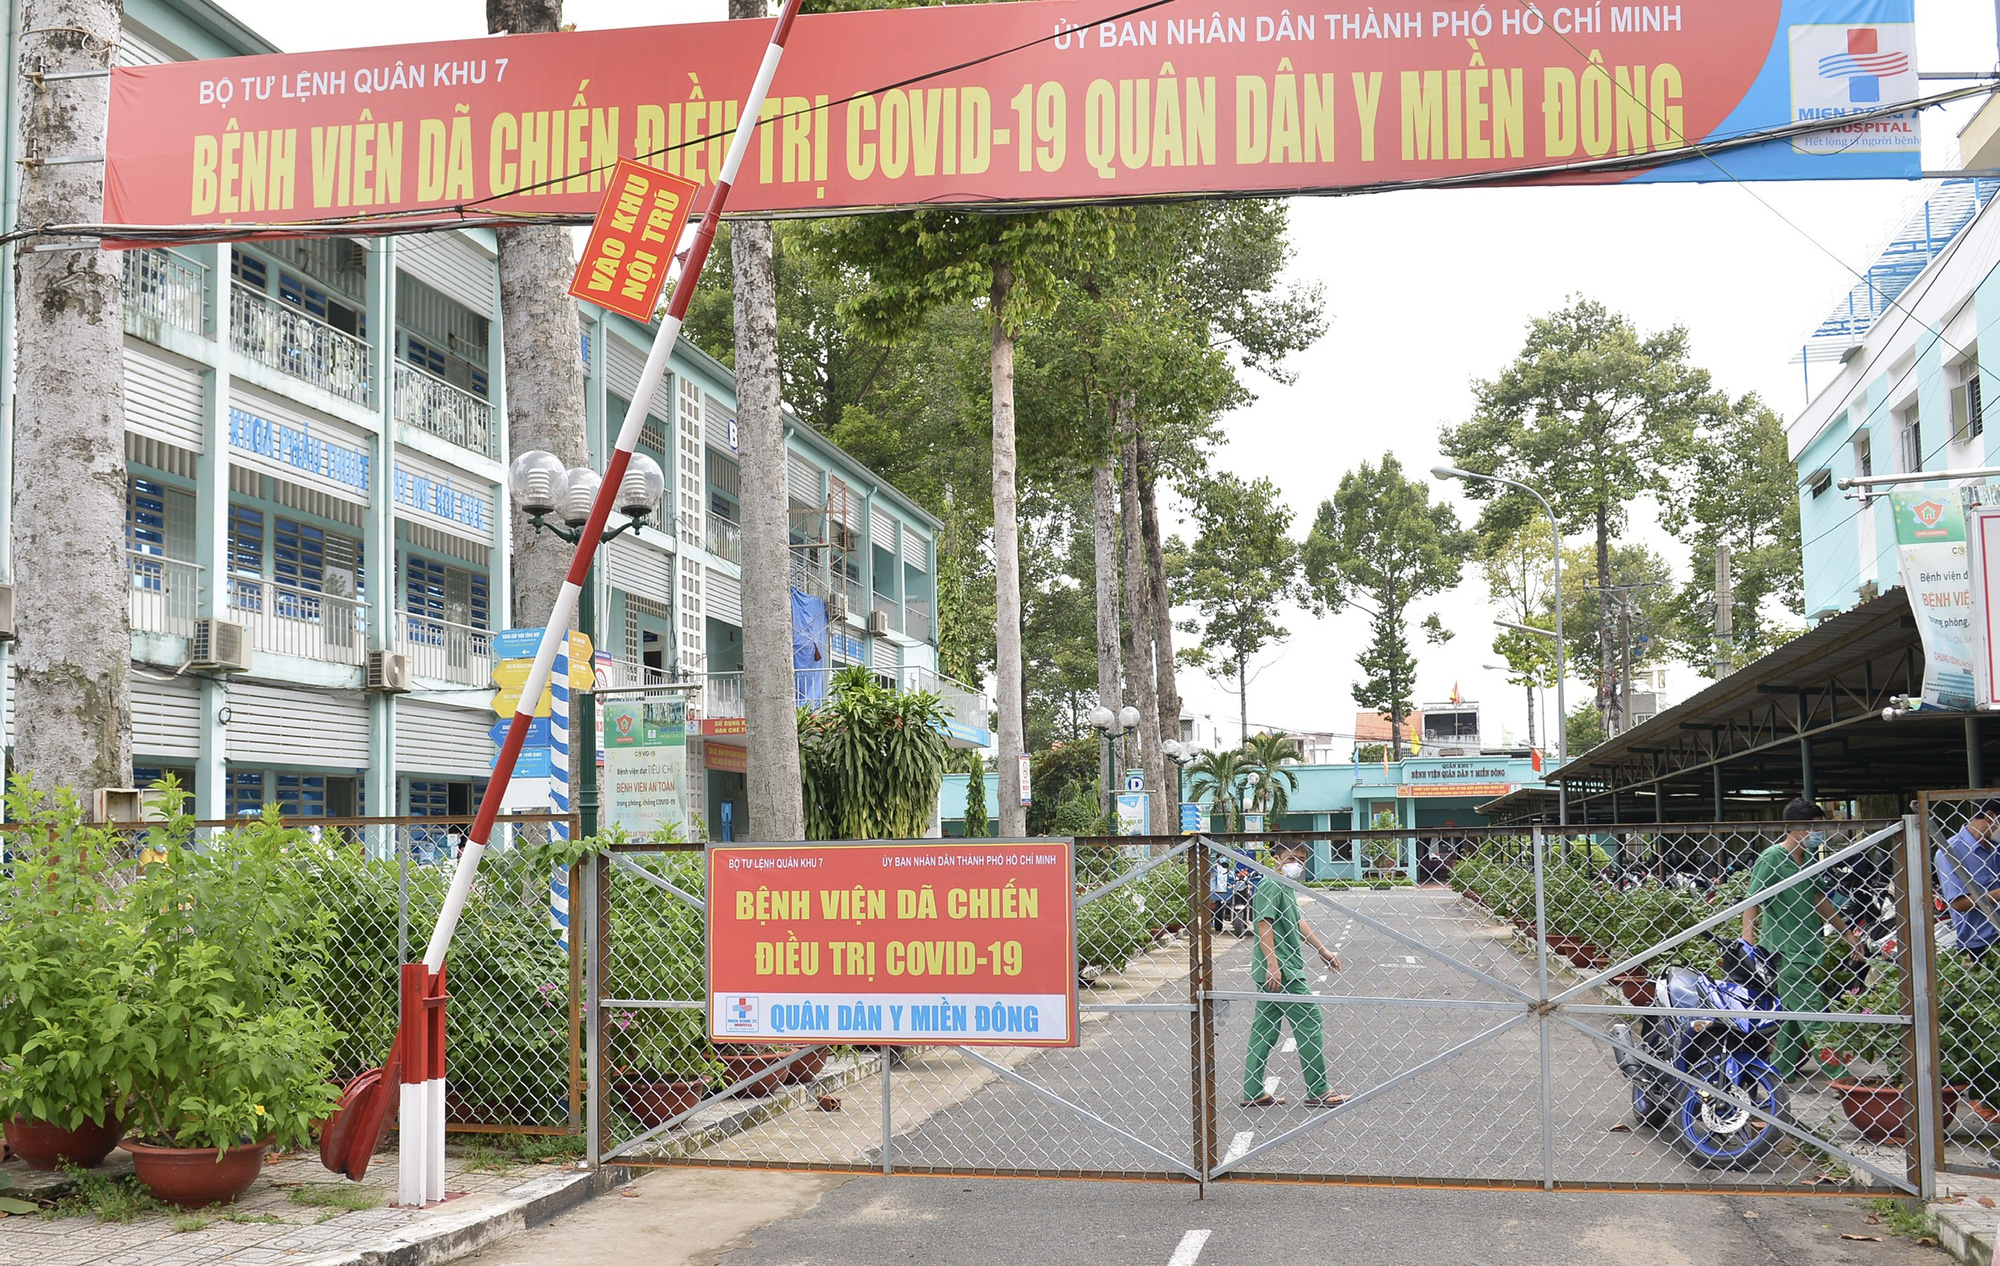 Ho Chi Minh City needs 7,000 more health workers for COVID-19 response